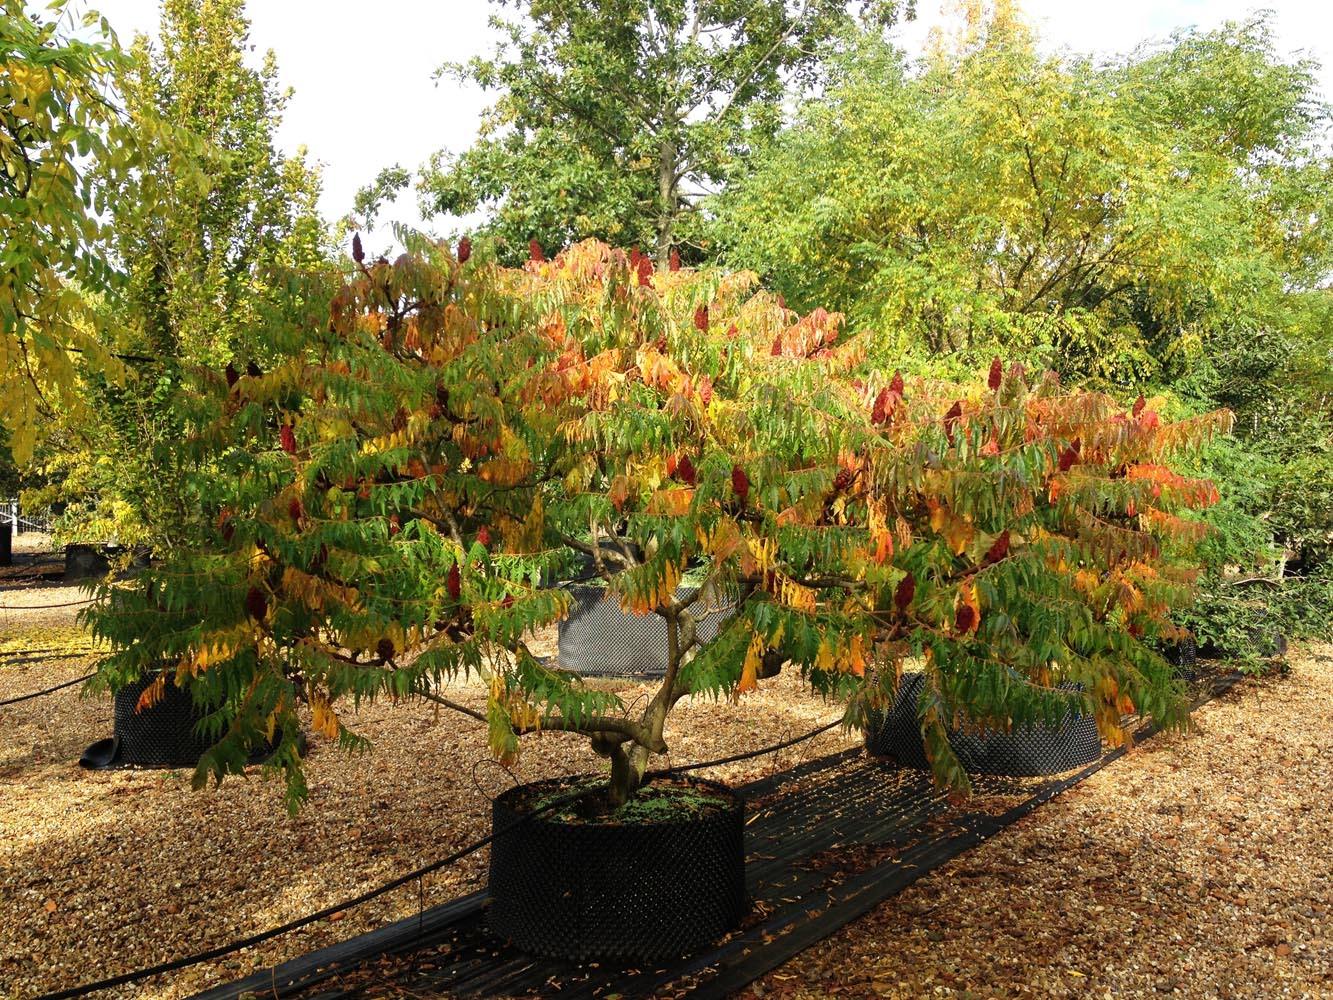 Rhus typhina - Stag's horn sumach